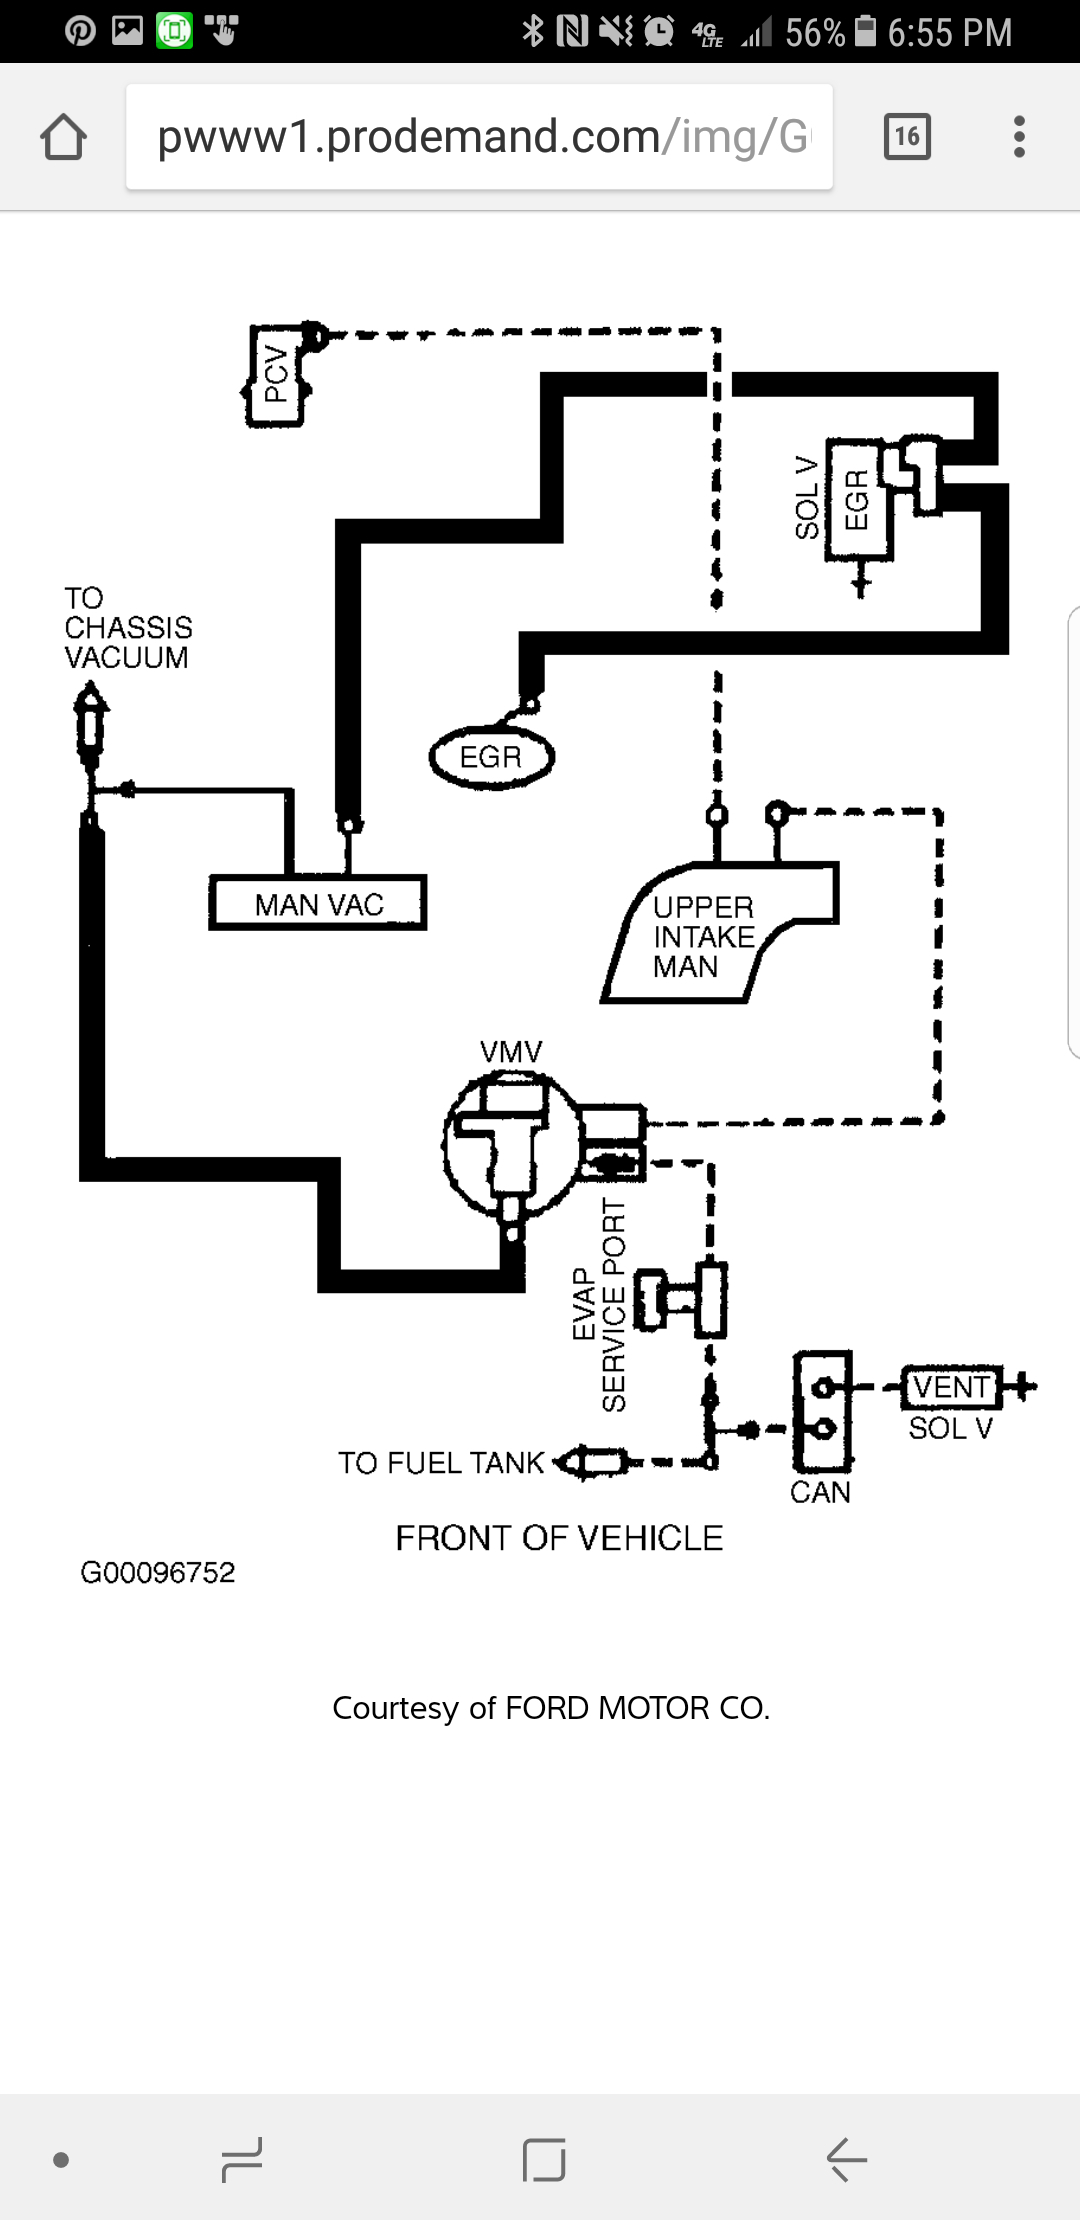 Vacuum Hose Diagram  I Need To Know What Kind Of Hoses Are